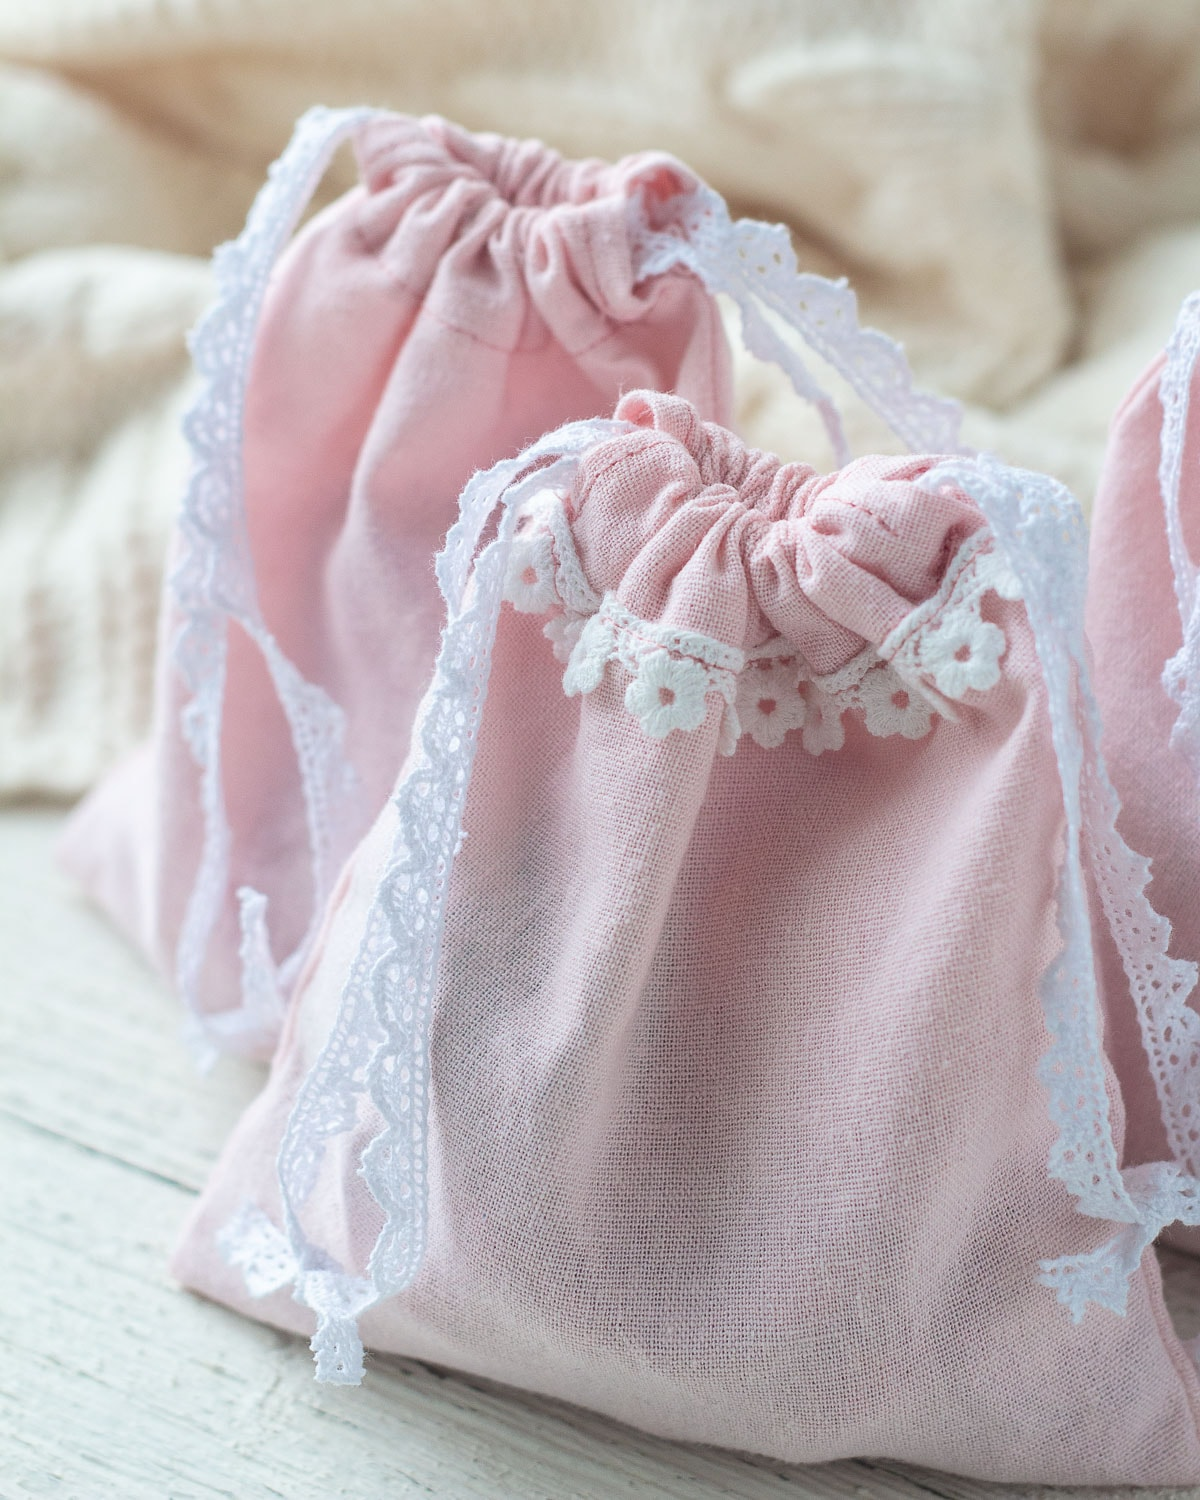 Valentine's Day DIY Gift Bags made with pink linen and lace ties.